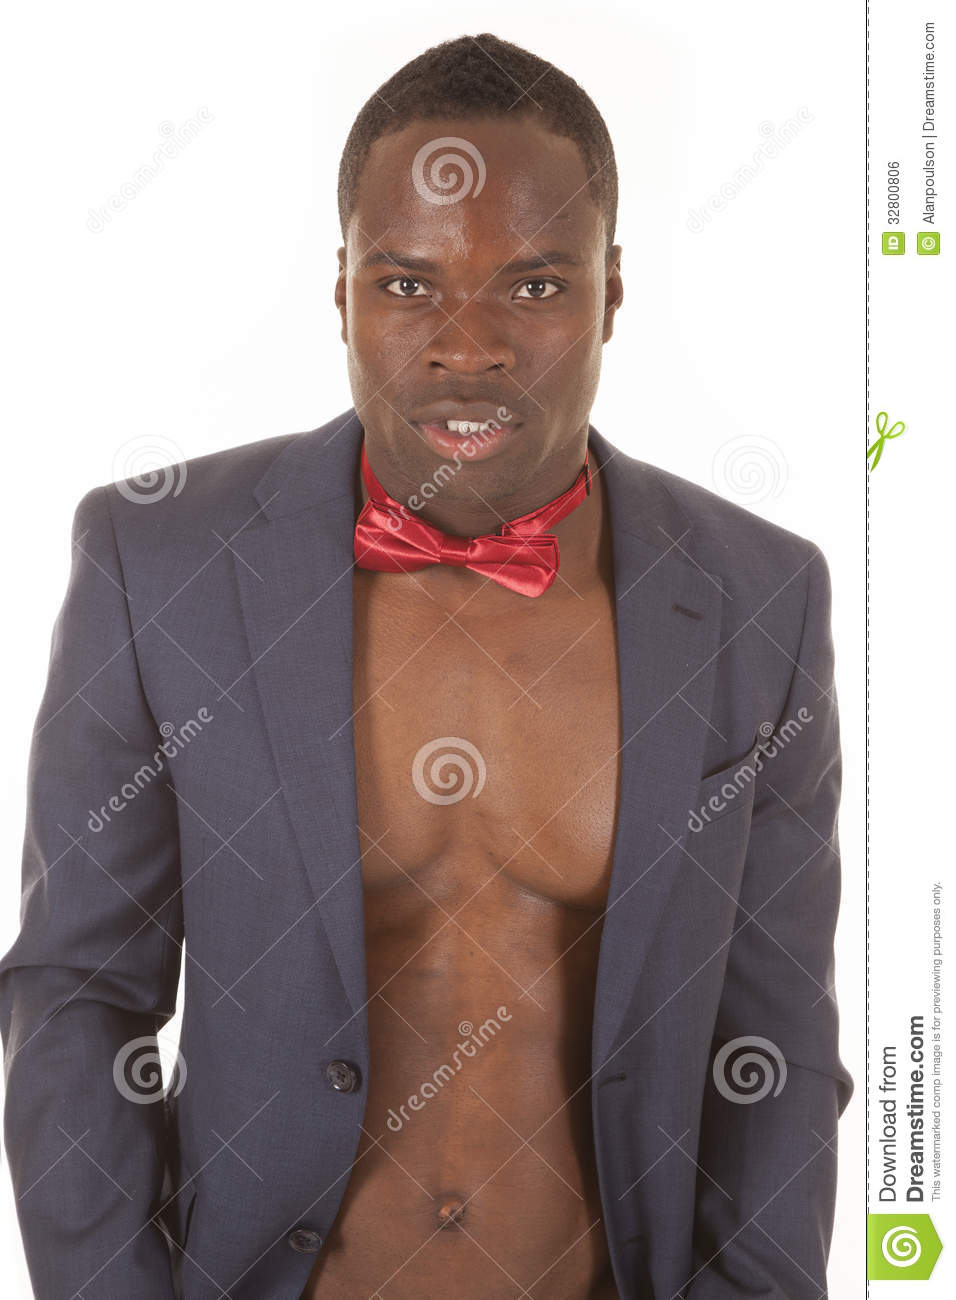 fcdca67140a4 Man No Shirt Bowtie Jacket Serious Stock Photo 32800806 - Megapixl